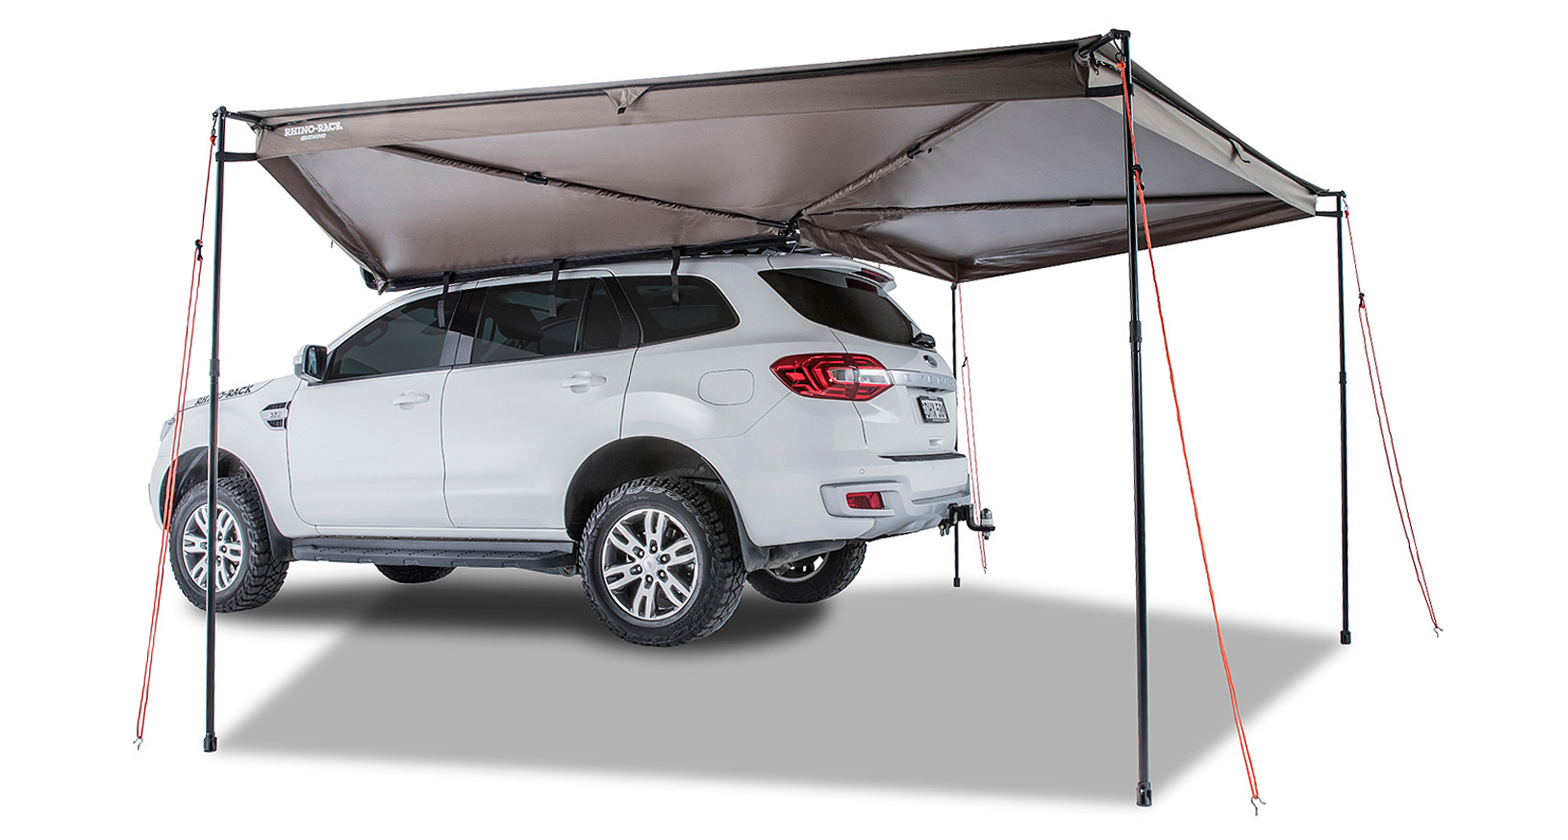 Rhino Rack Batwing Awning - Left Side